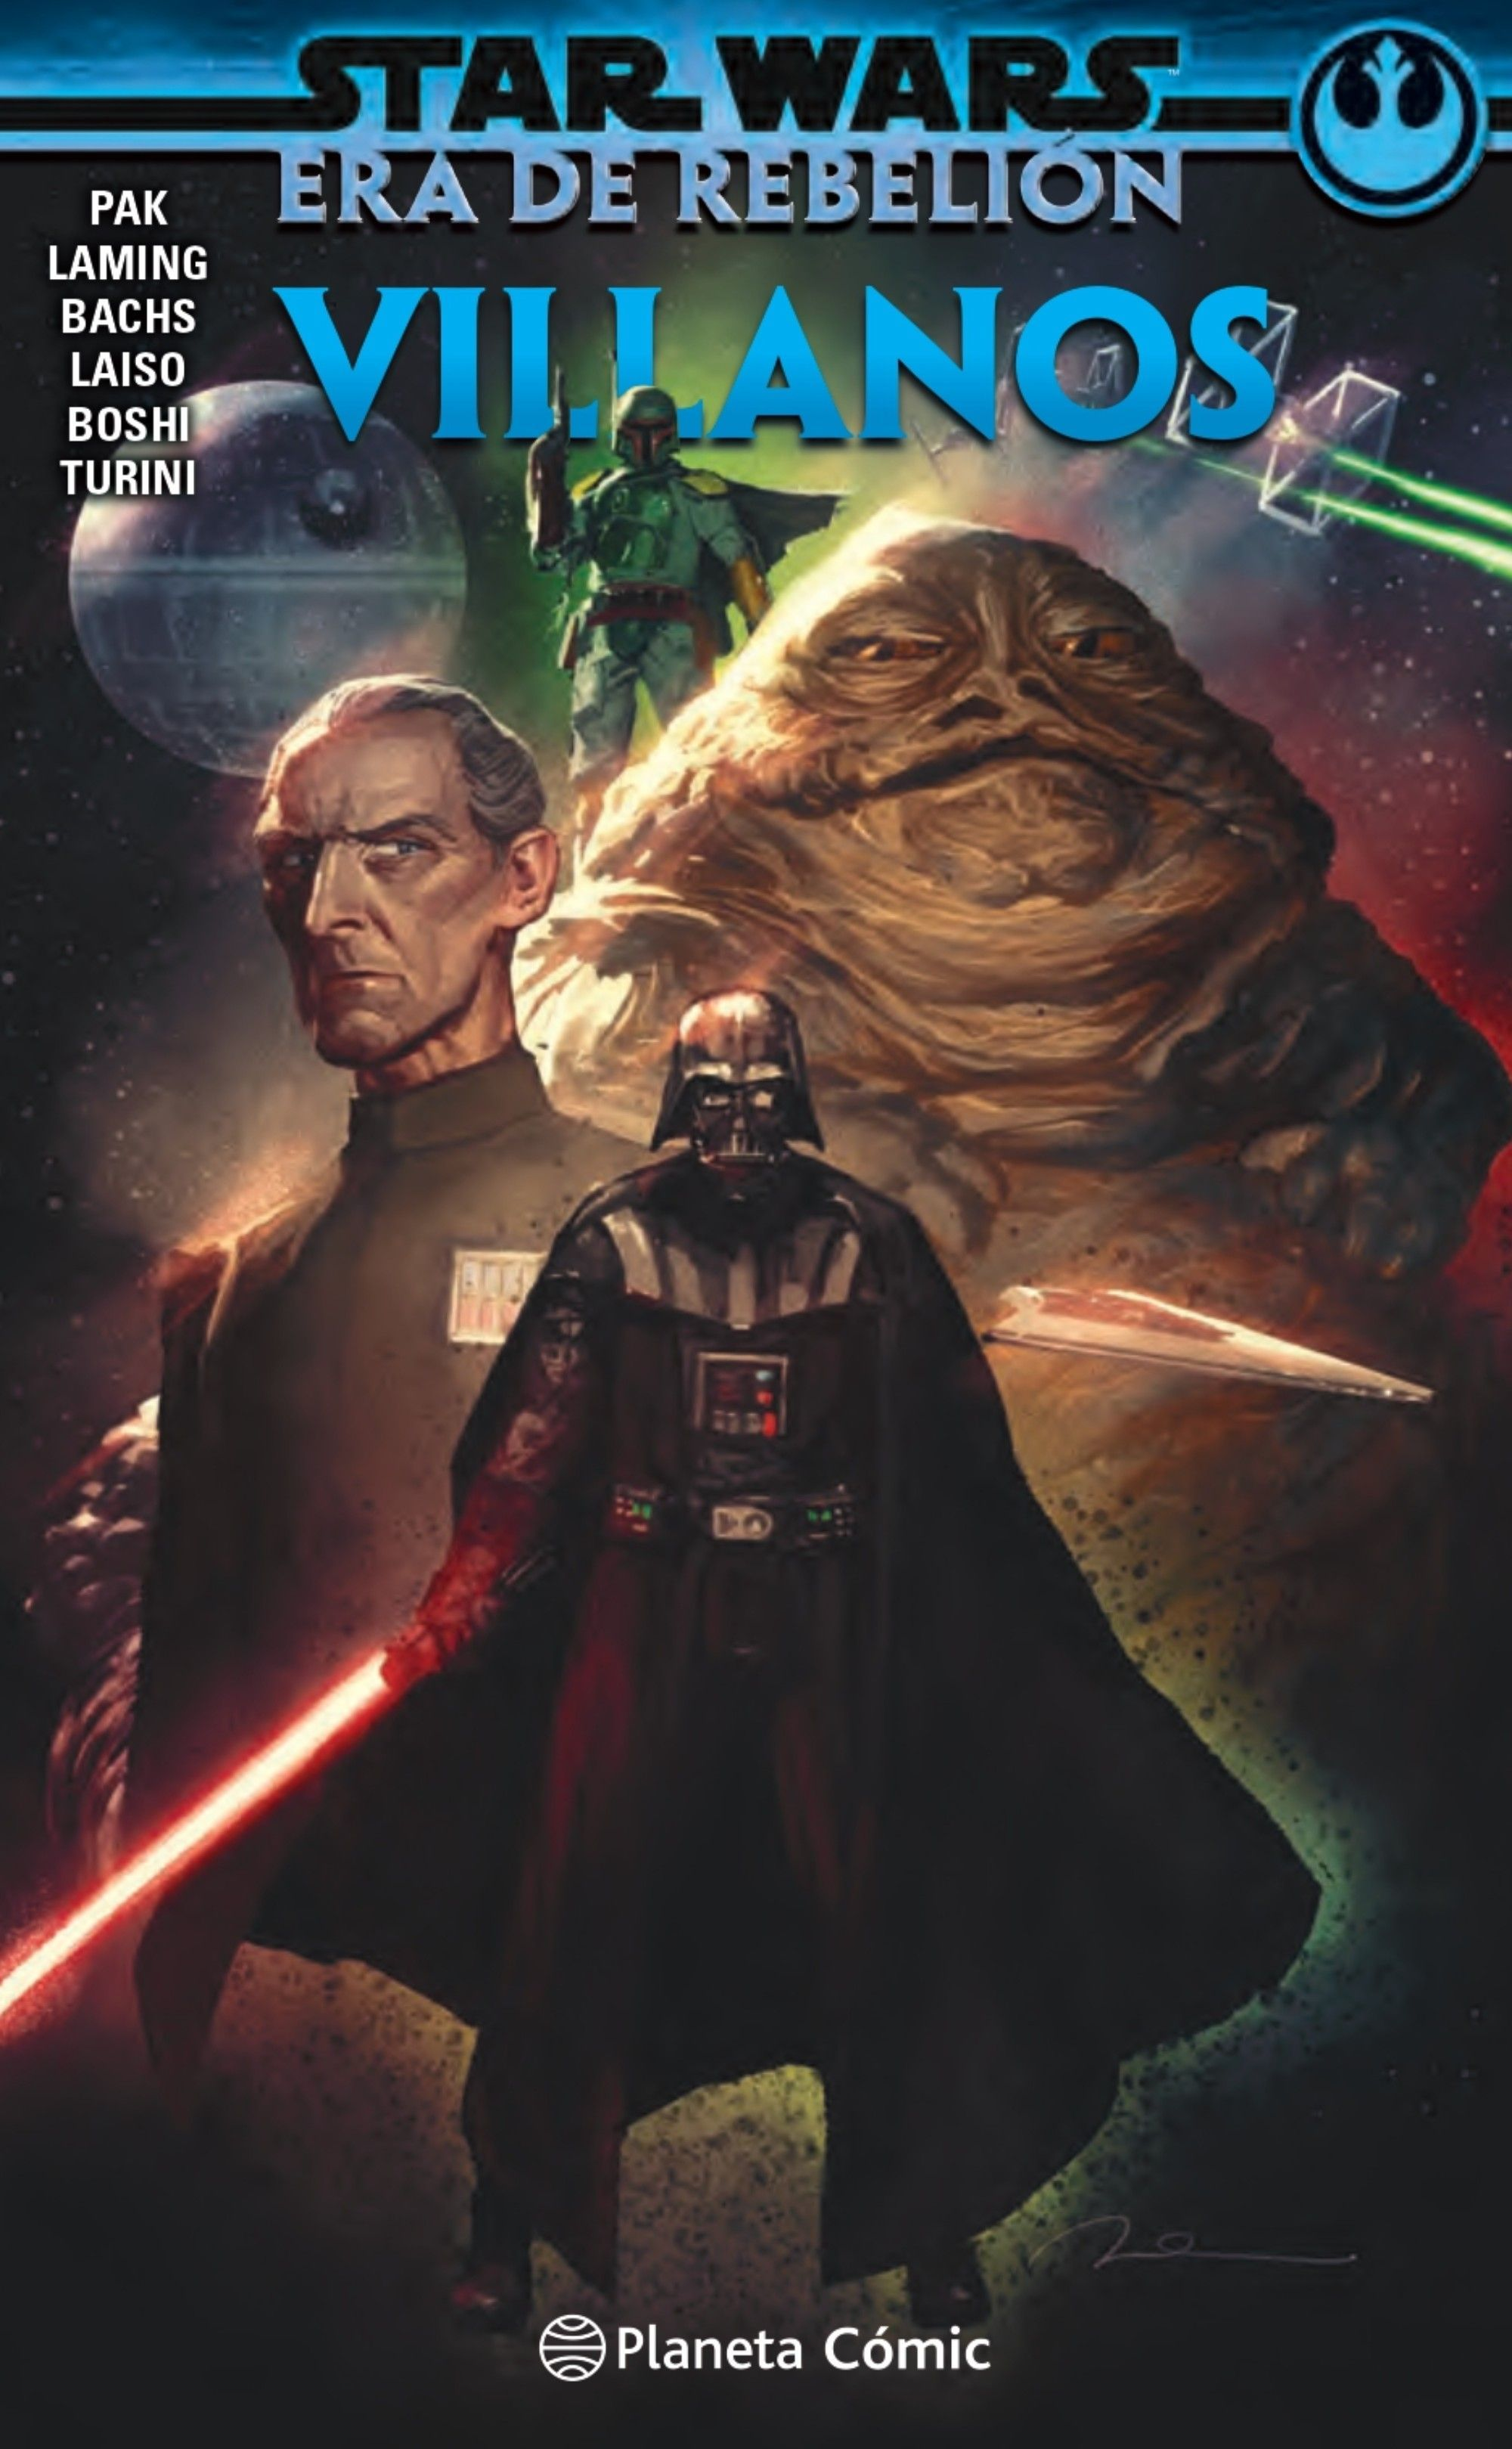 STAR WARS ERA DE LA REBELIÓN: VILLANOS